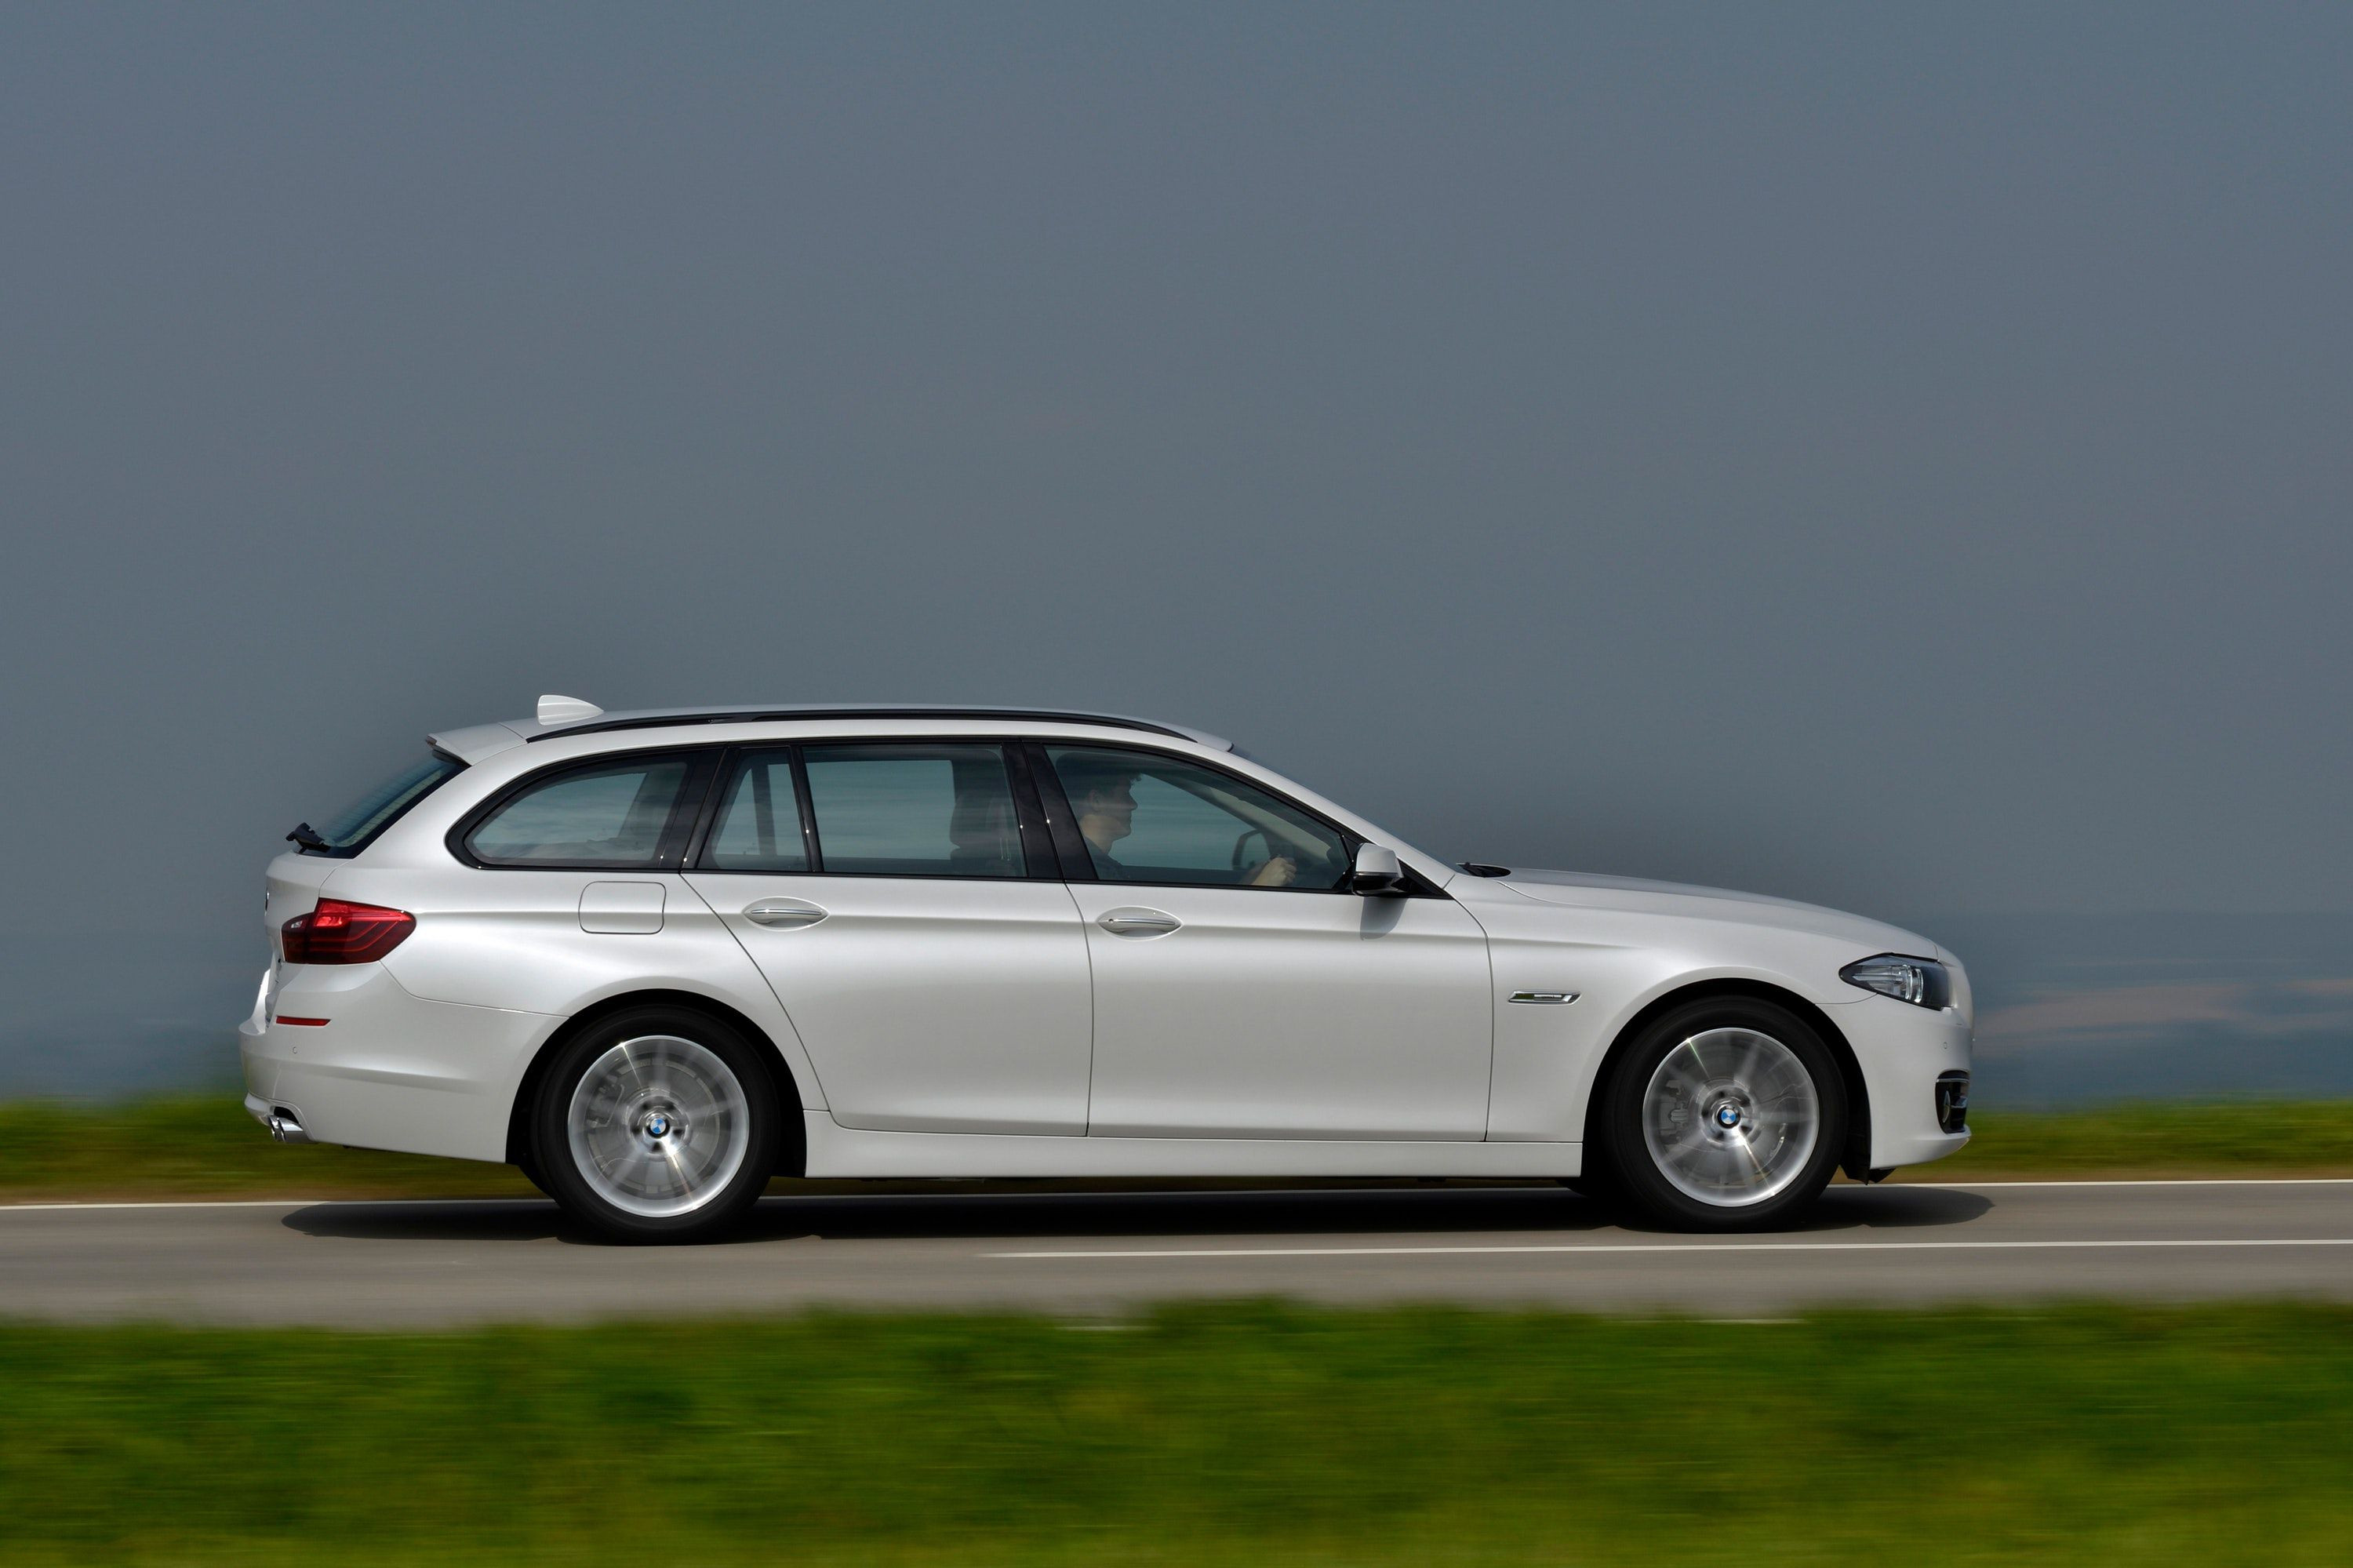 BMW 5 series touring seen side on